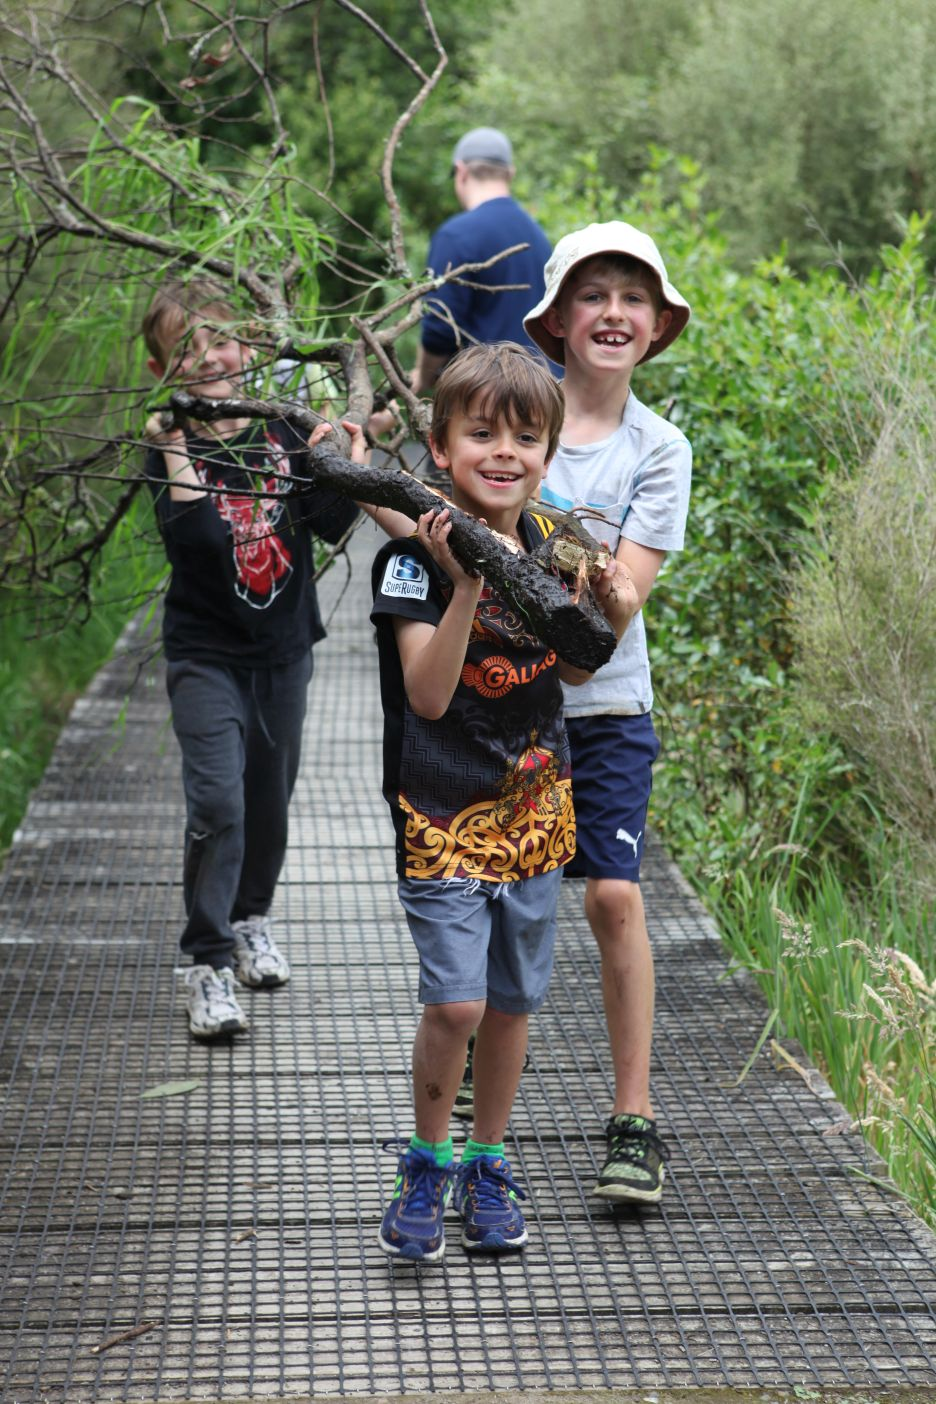 Act-of-Kindness-Volunteer-Waikato-River-Trails-Young people mucking in on AOKs clean up project with Waikato River Trails Nov 2017.JPG